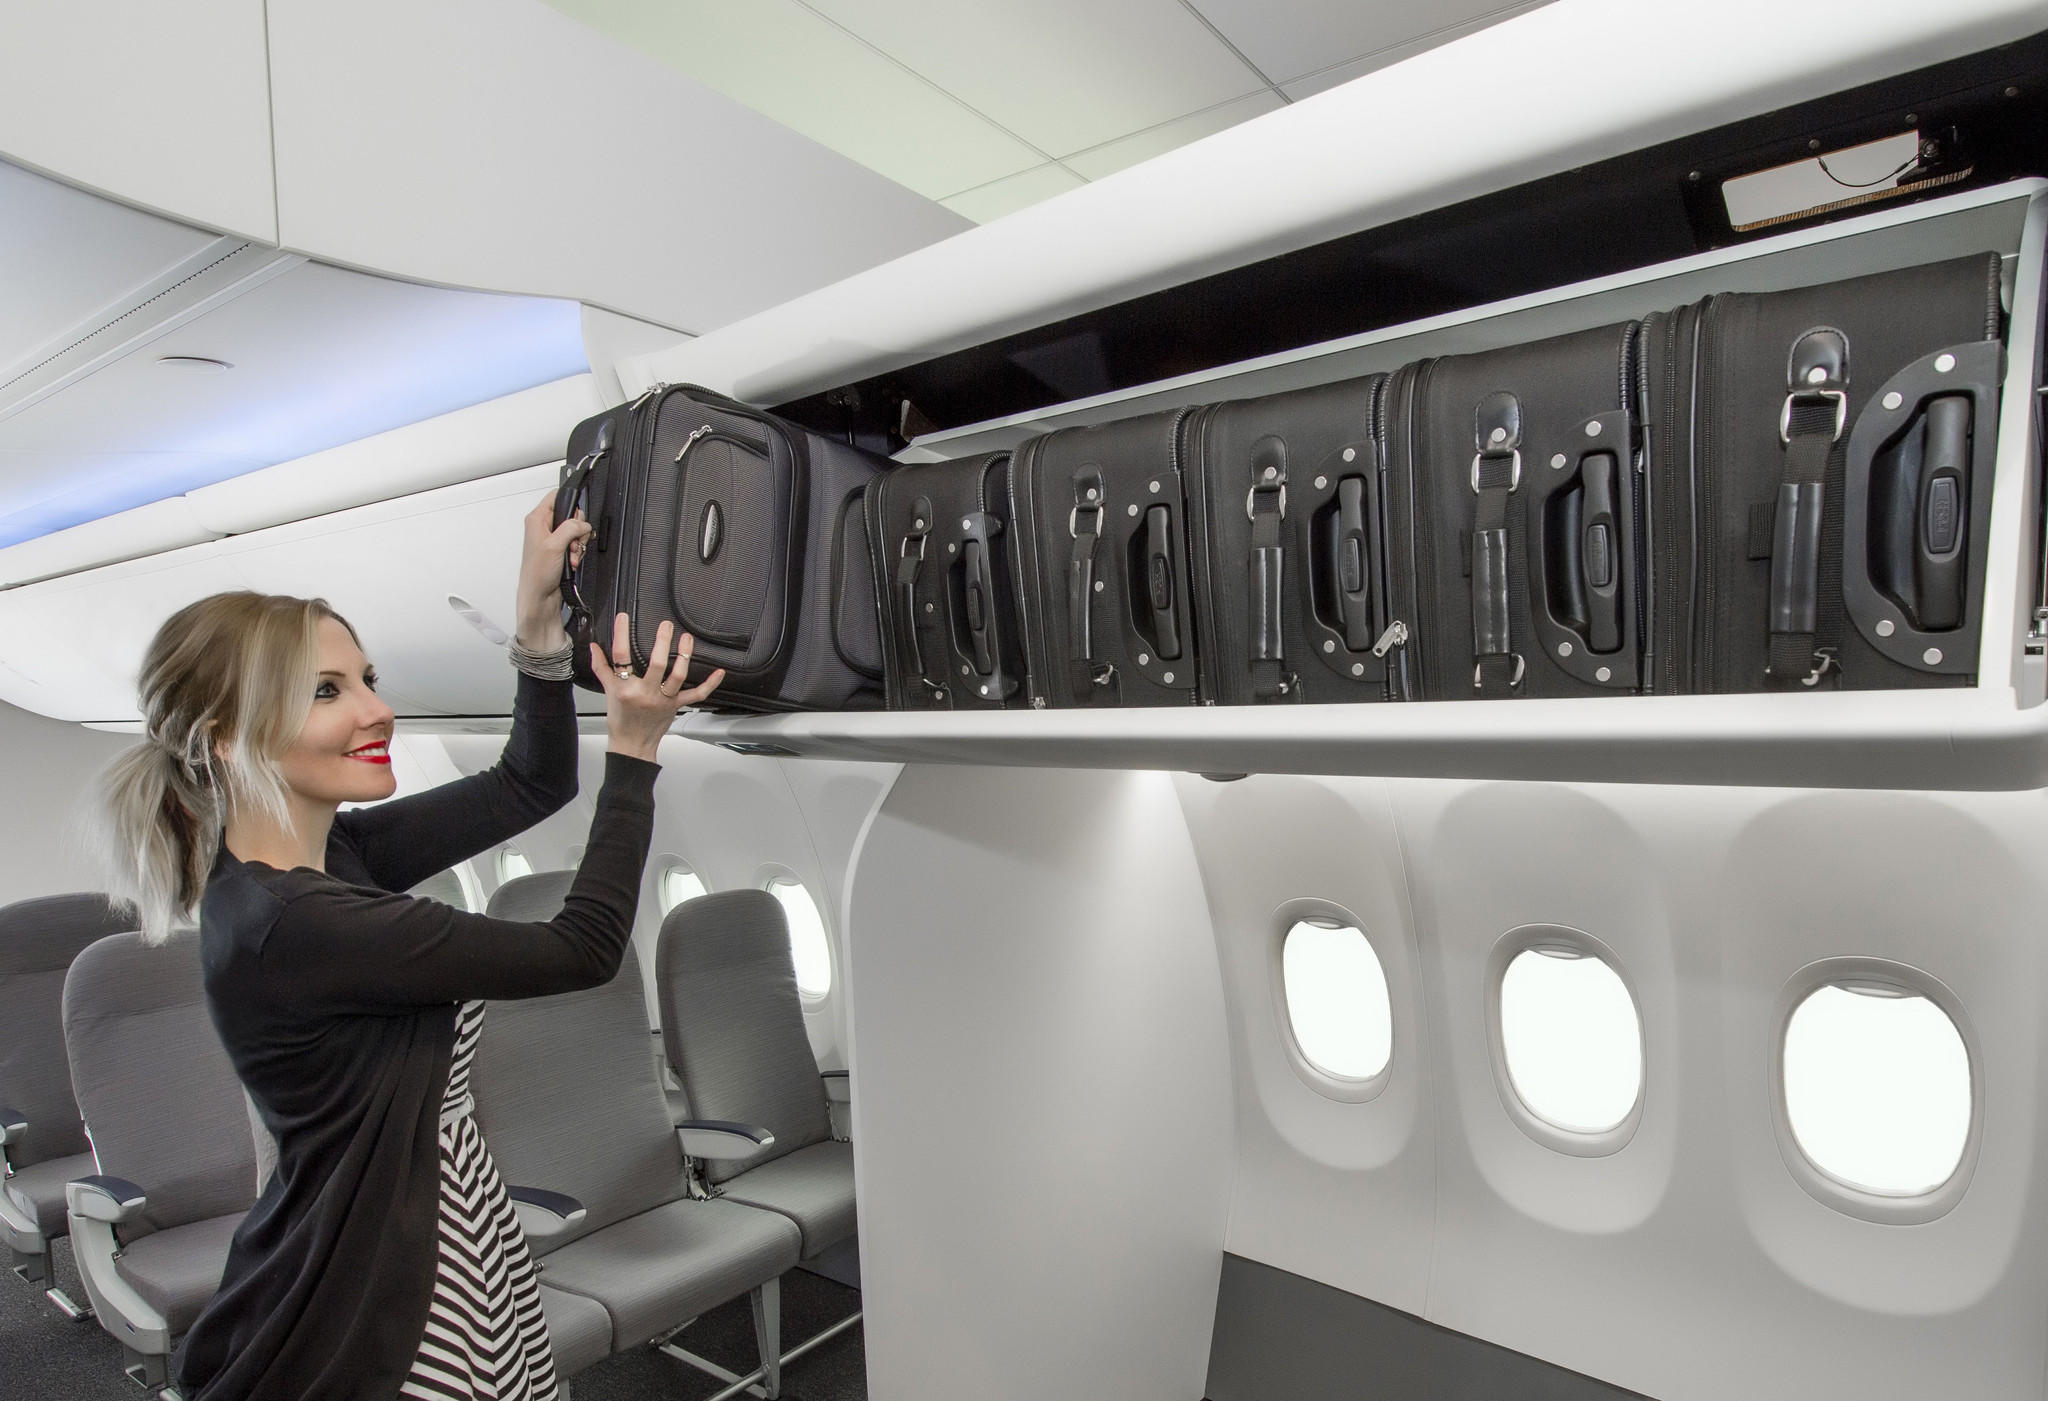 Boeing announced the launch of its new Space Bins today, which provide more room for carry-on bags.